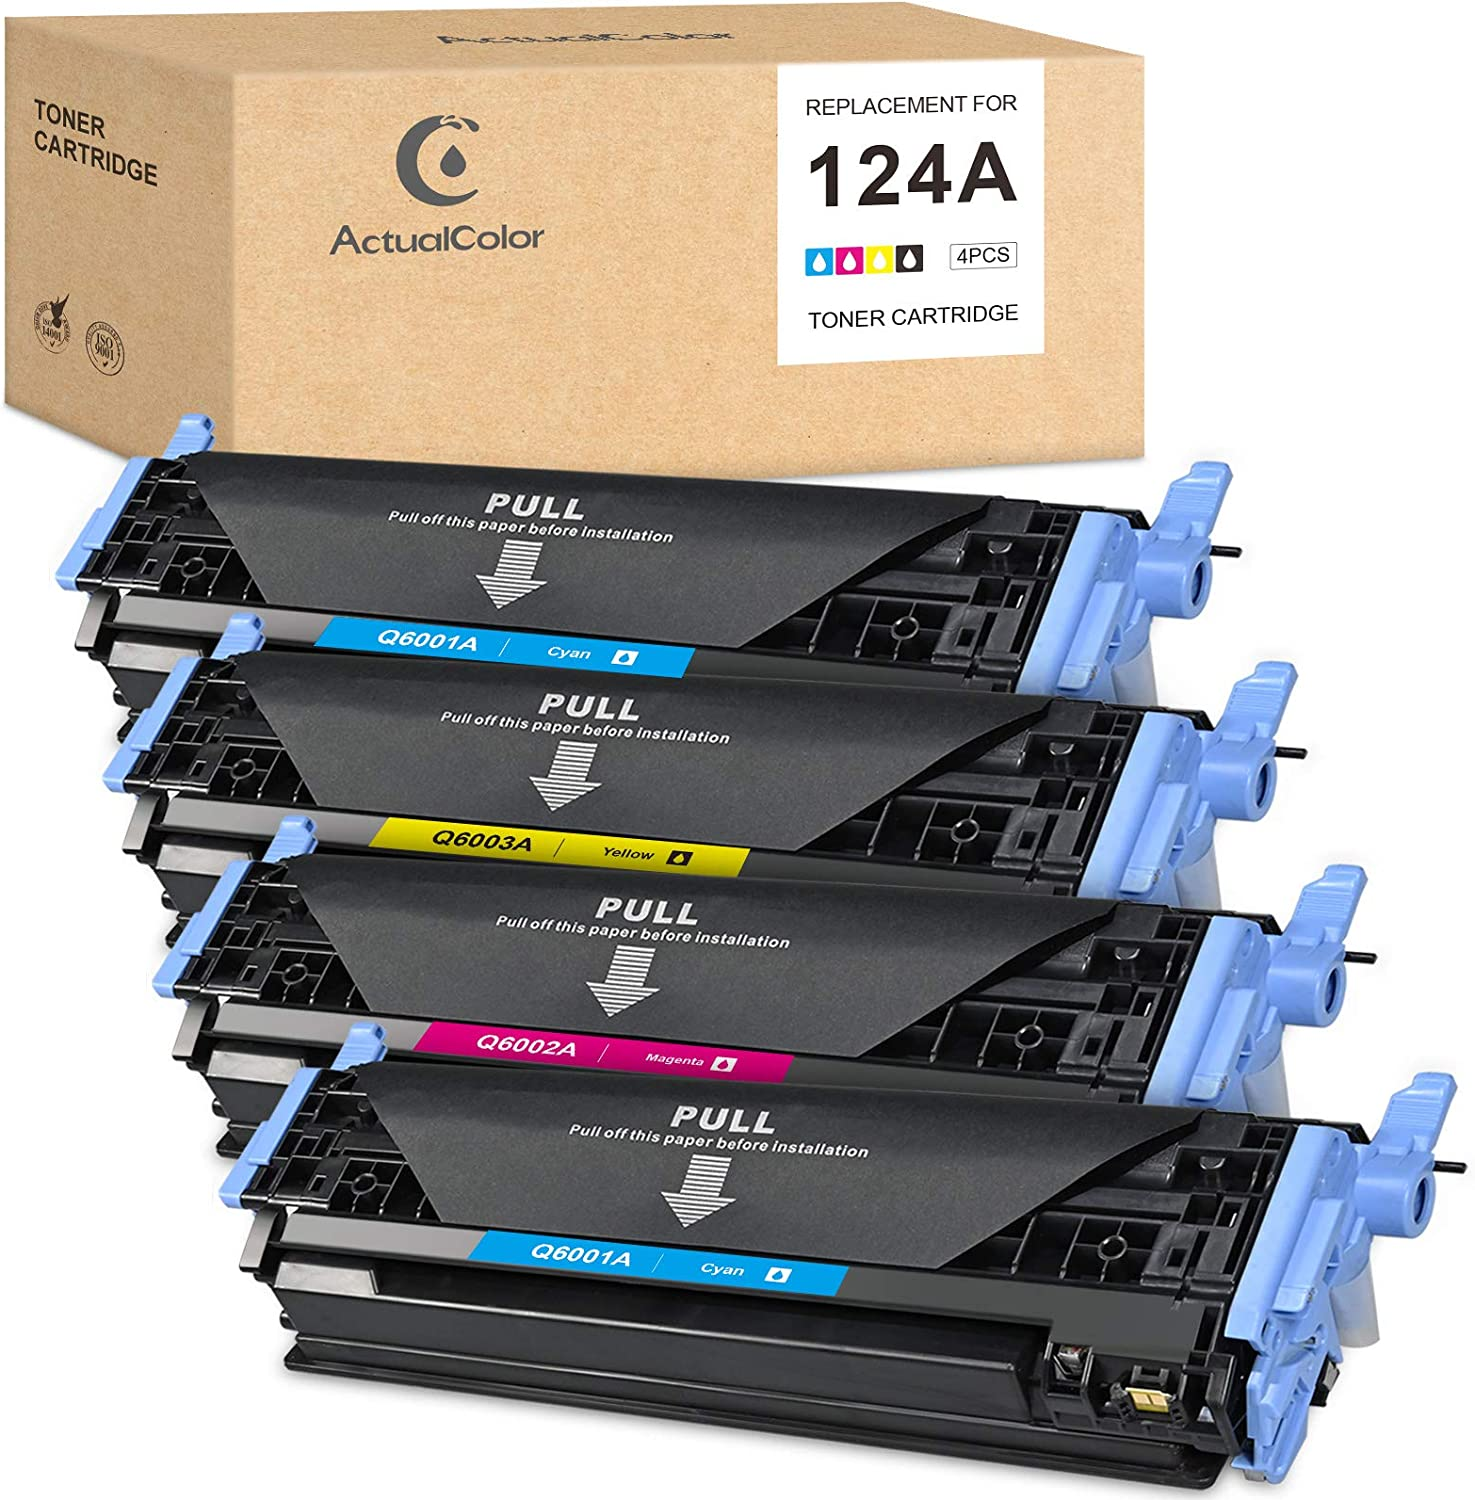 ActualColor C Remanufactured Toner Cartridge Replacement for HP 124A 124 Q6000A Q6001A Q6002A Q6003A Color LaserJet 1600 2600 2600n 2605 2605dn 2605dnt 1015 1017 (Black, Cyan, Yellow, Magenta, 4-Pack)